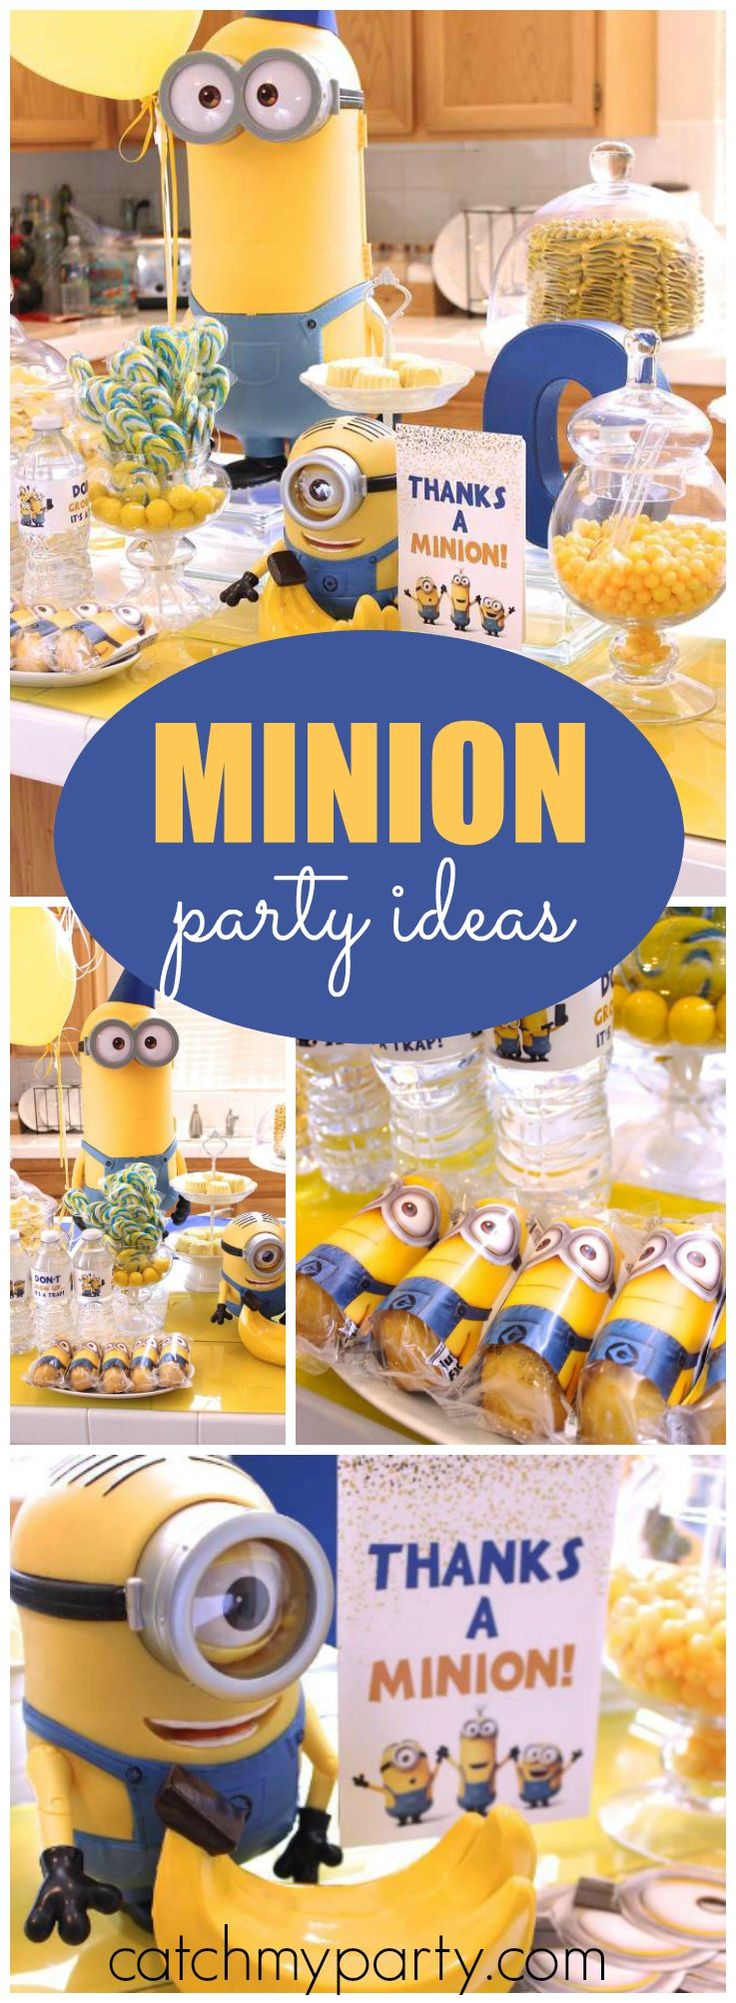 How fun is this Despicable Me Minion birthday party?! See more party ideas at CatchMyParty.com!